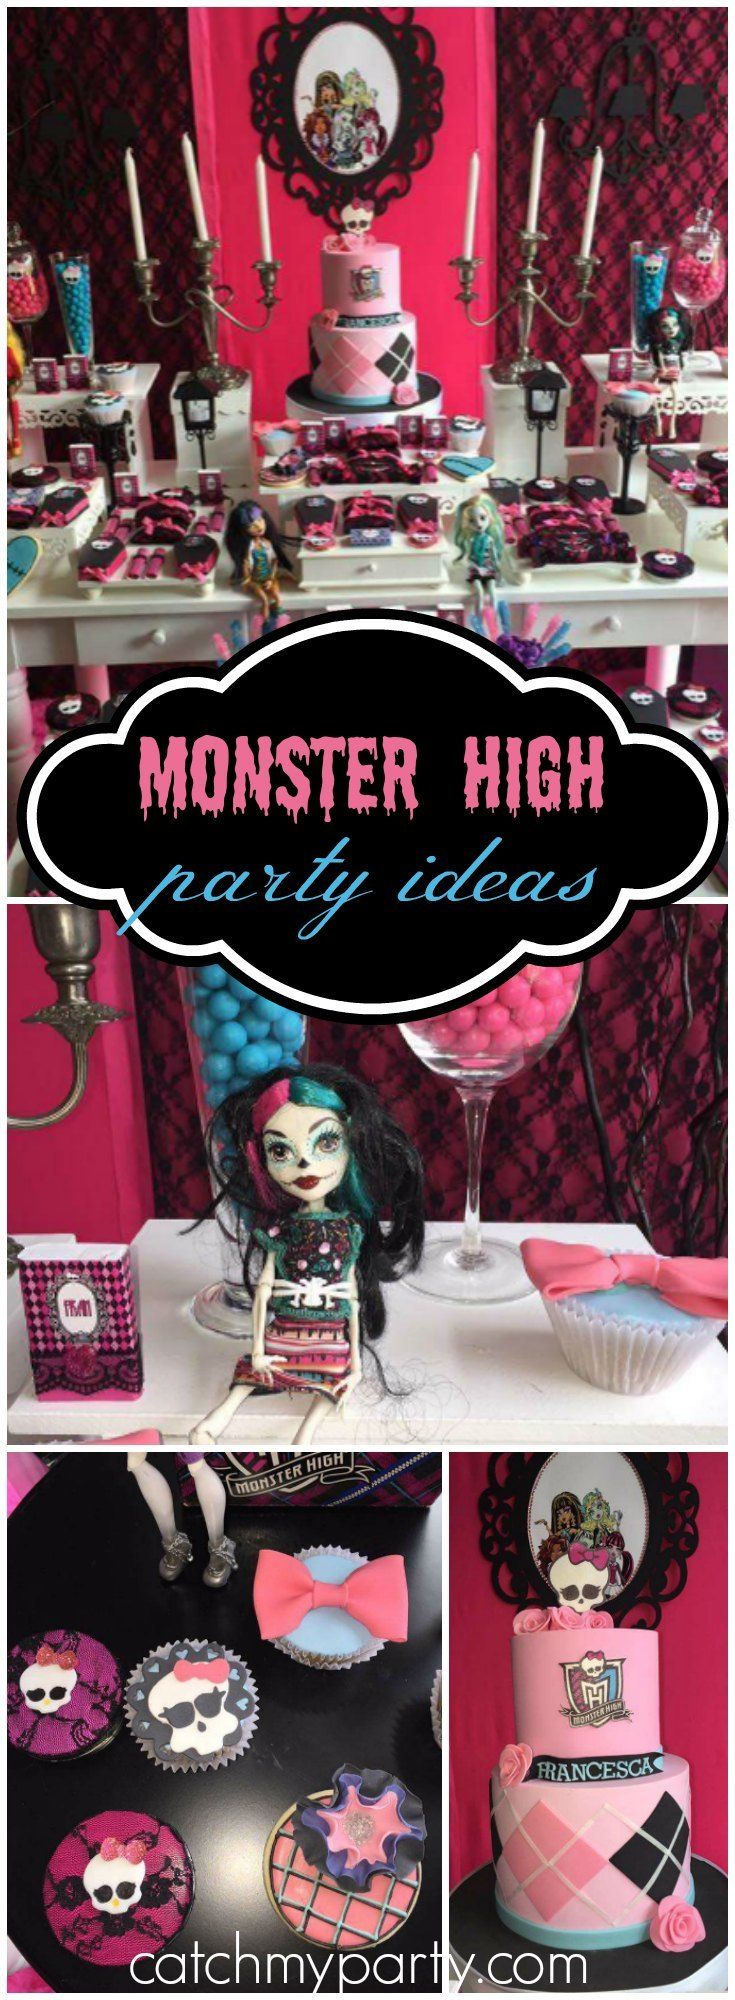 You have to see this awesome Monster High birthday party! See more party ideas at Catchmyparty.com!